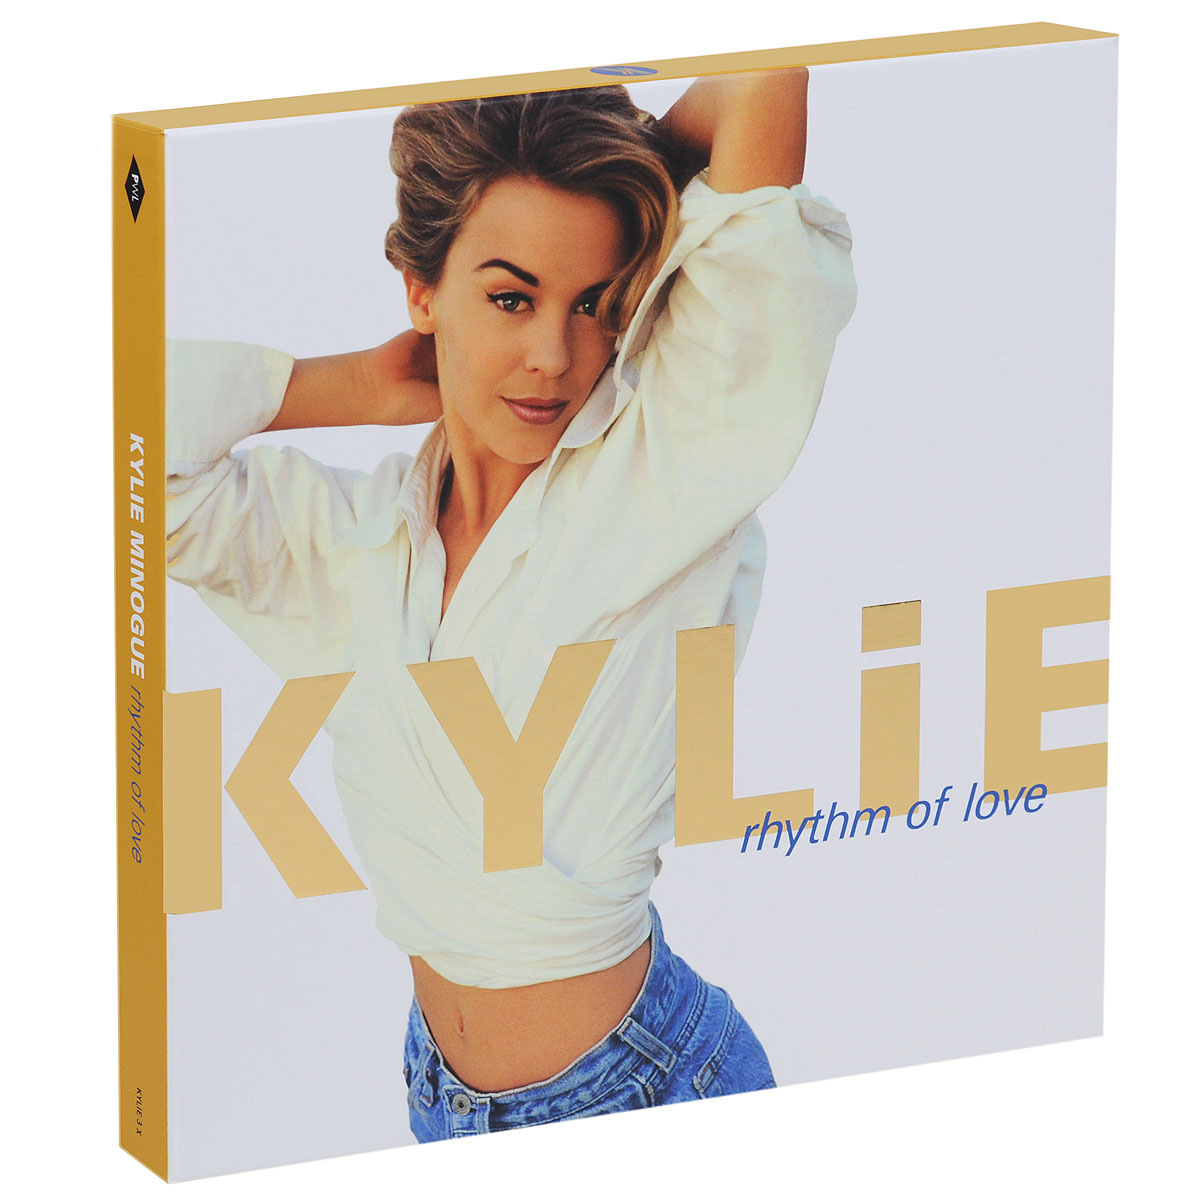 Кайли Миноуг Kylie Minogue. Rhythm Of Love (2 CD + DVD + LP) cd диск minogue kylie kylie christmas snow queen edition 1cd